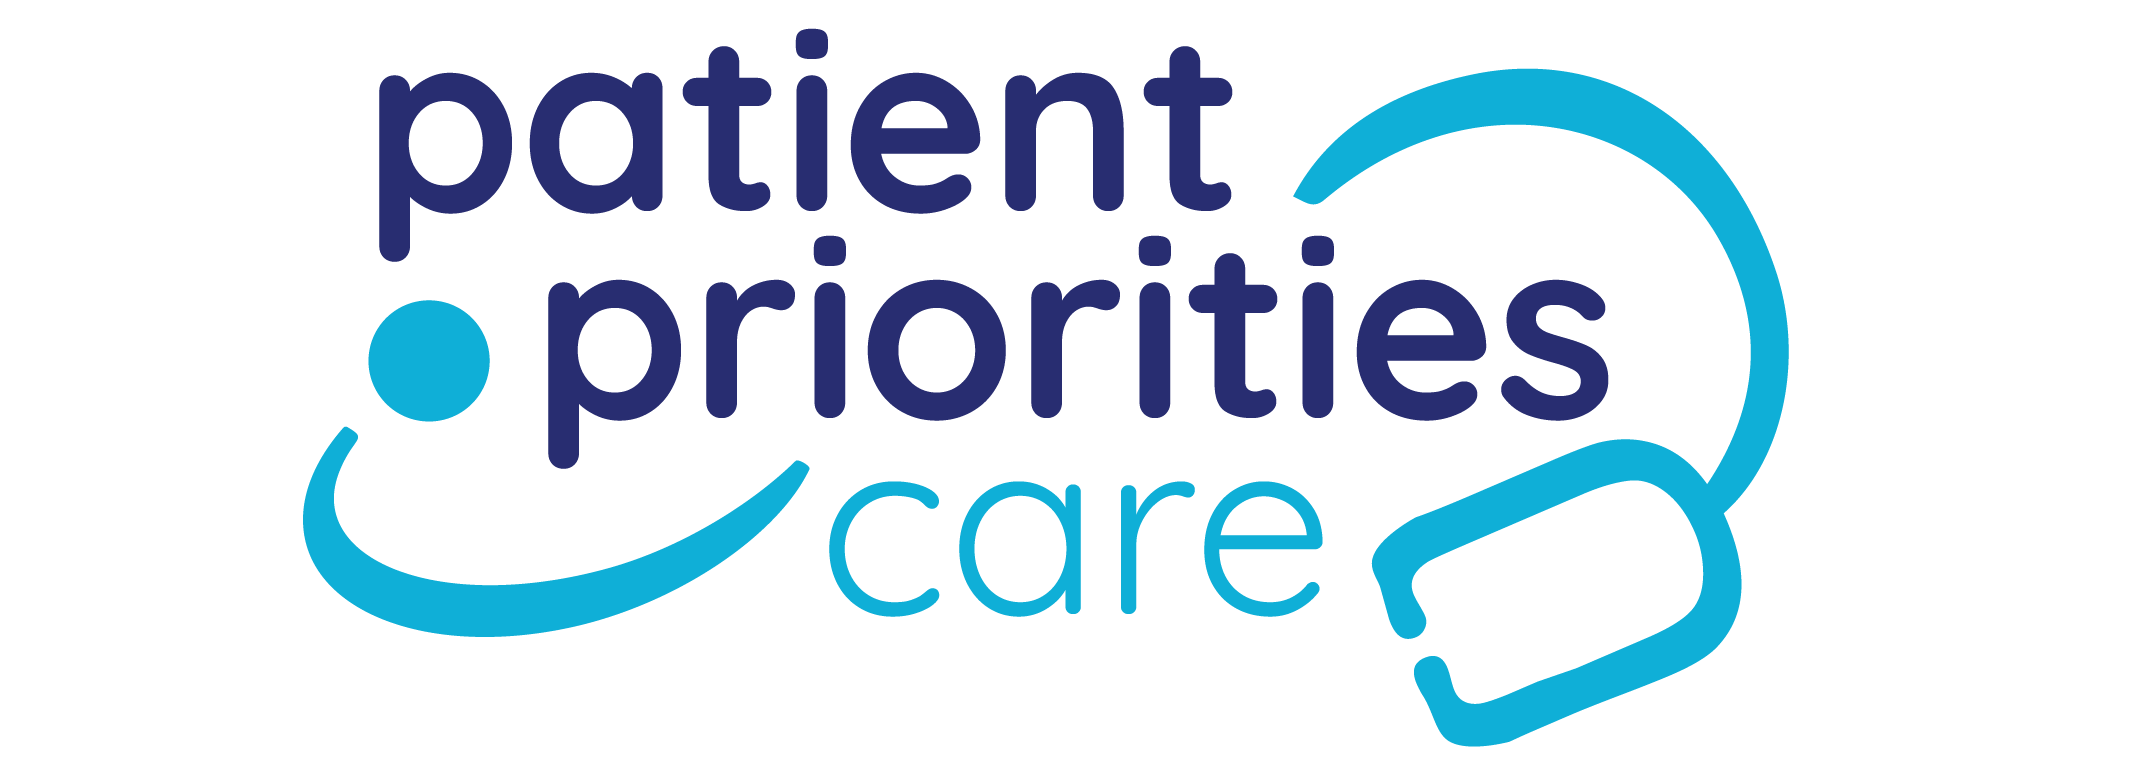 Patient Priorities Care Decisional Guidance